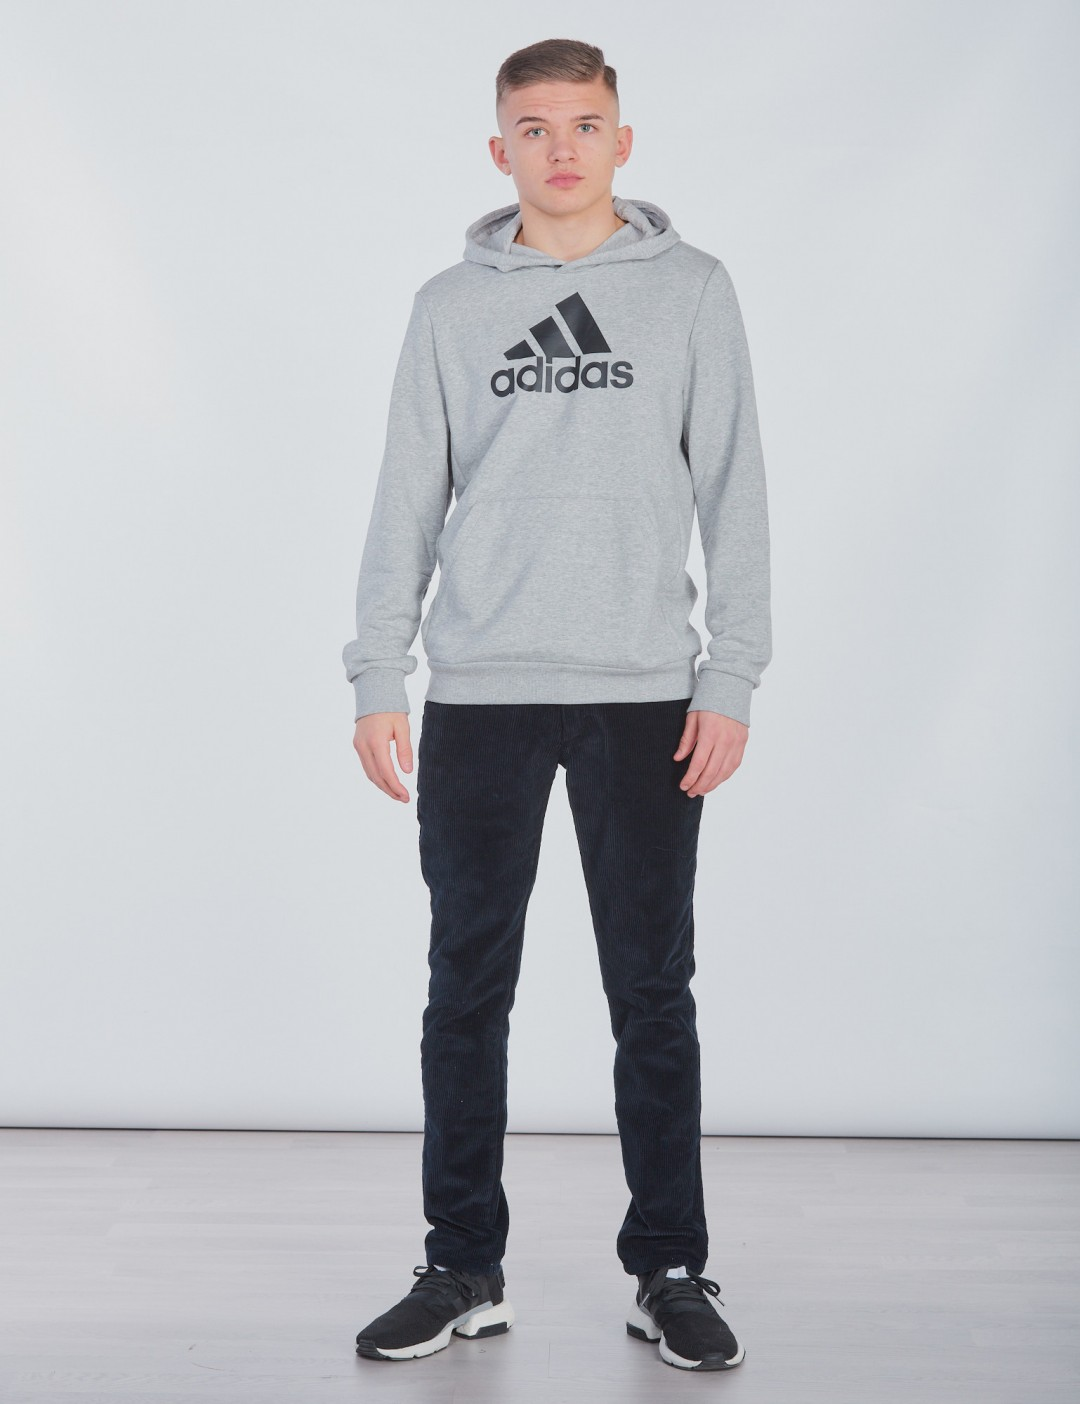 adidas performance grau